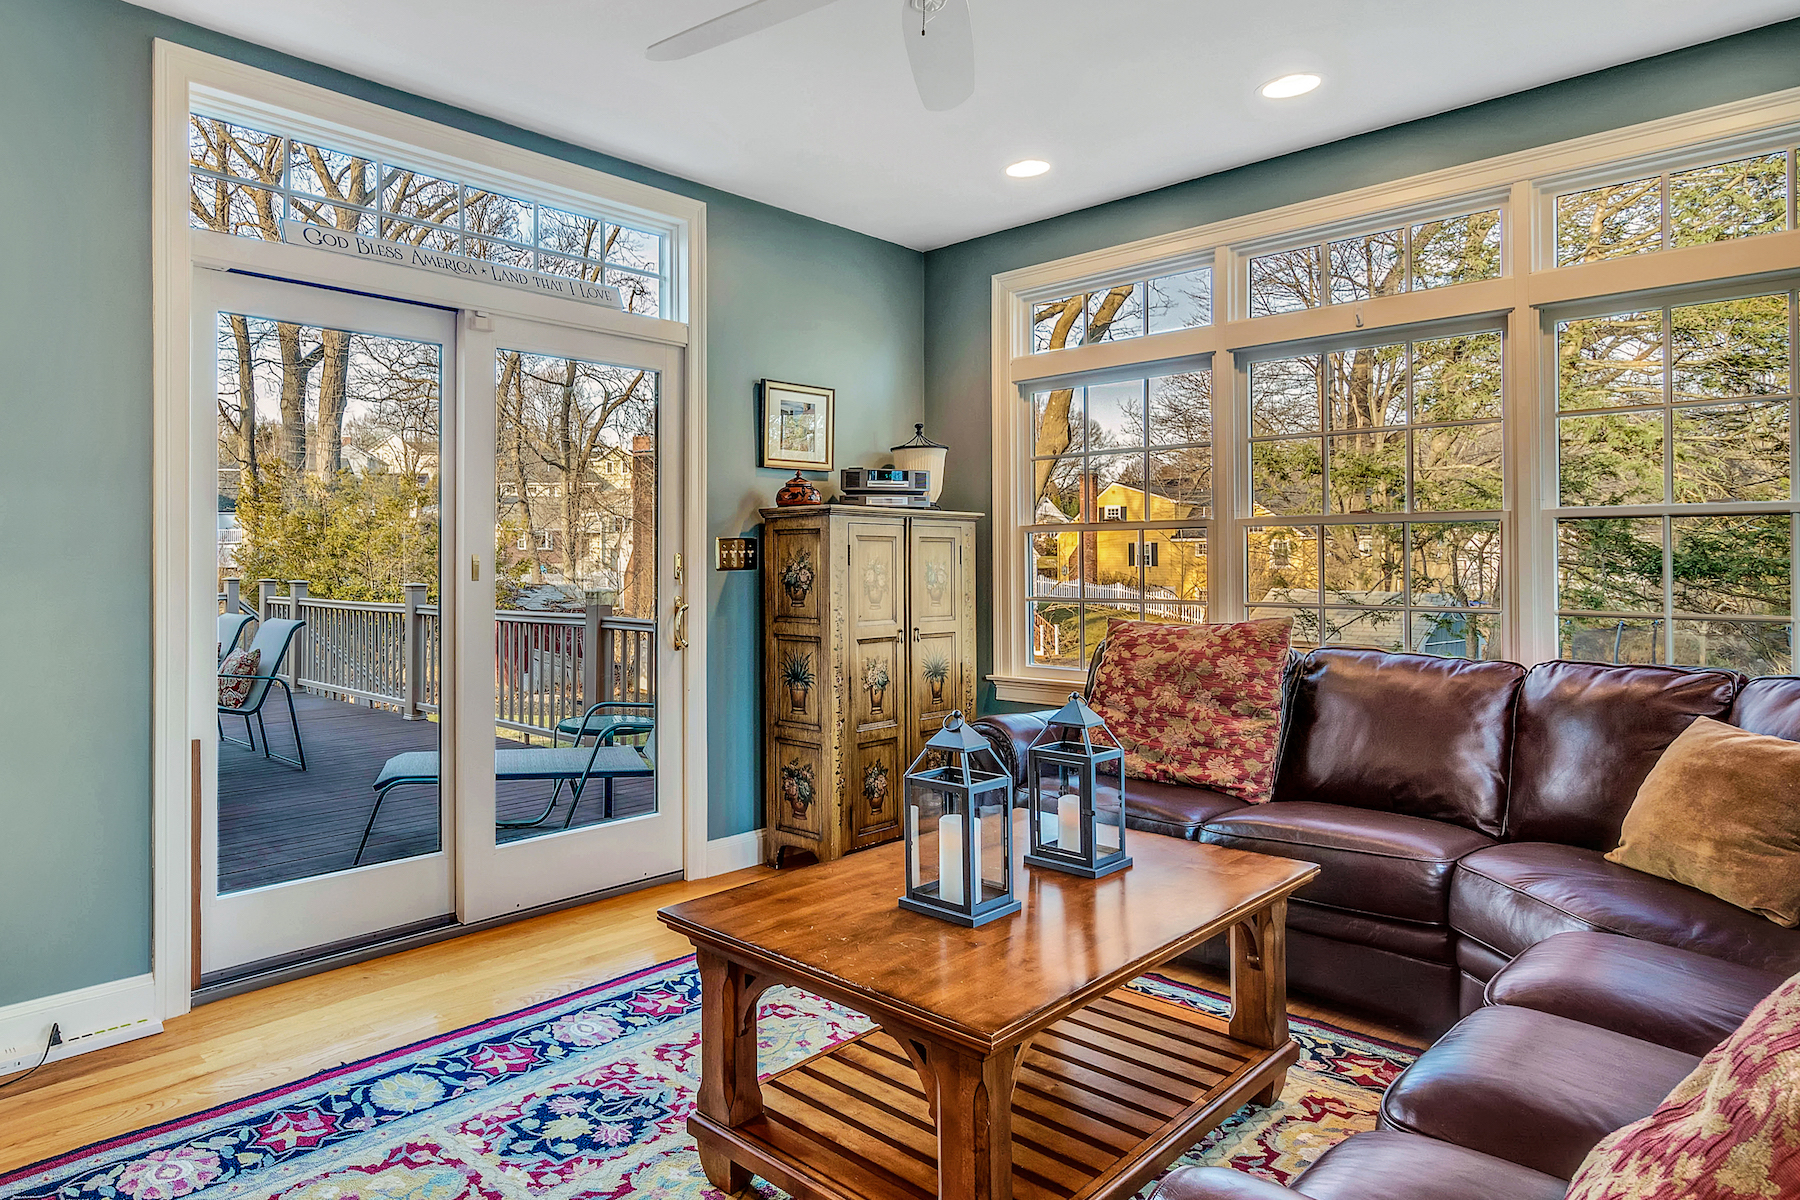 Additional photo for property listing at Renovated Cape in East Hill neighborhood 4 Alden Lane Winchester, Massachusetts 01890 United States